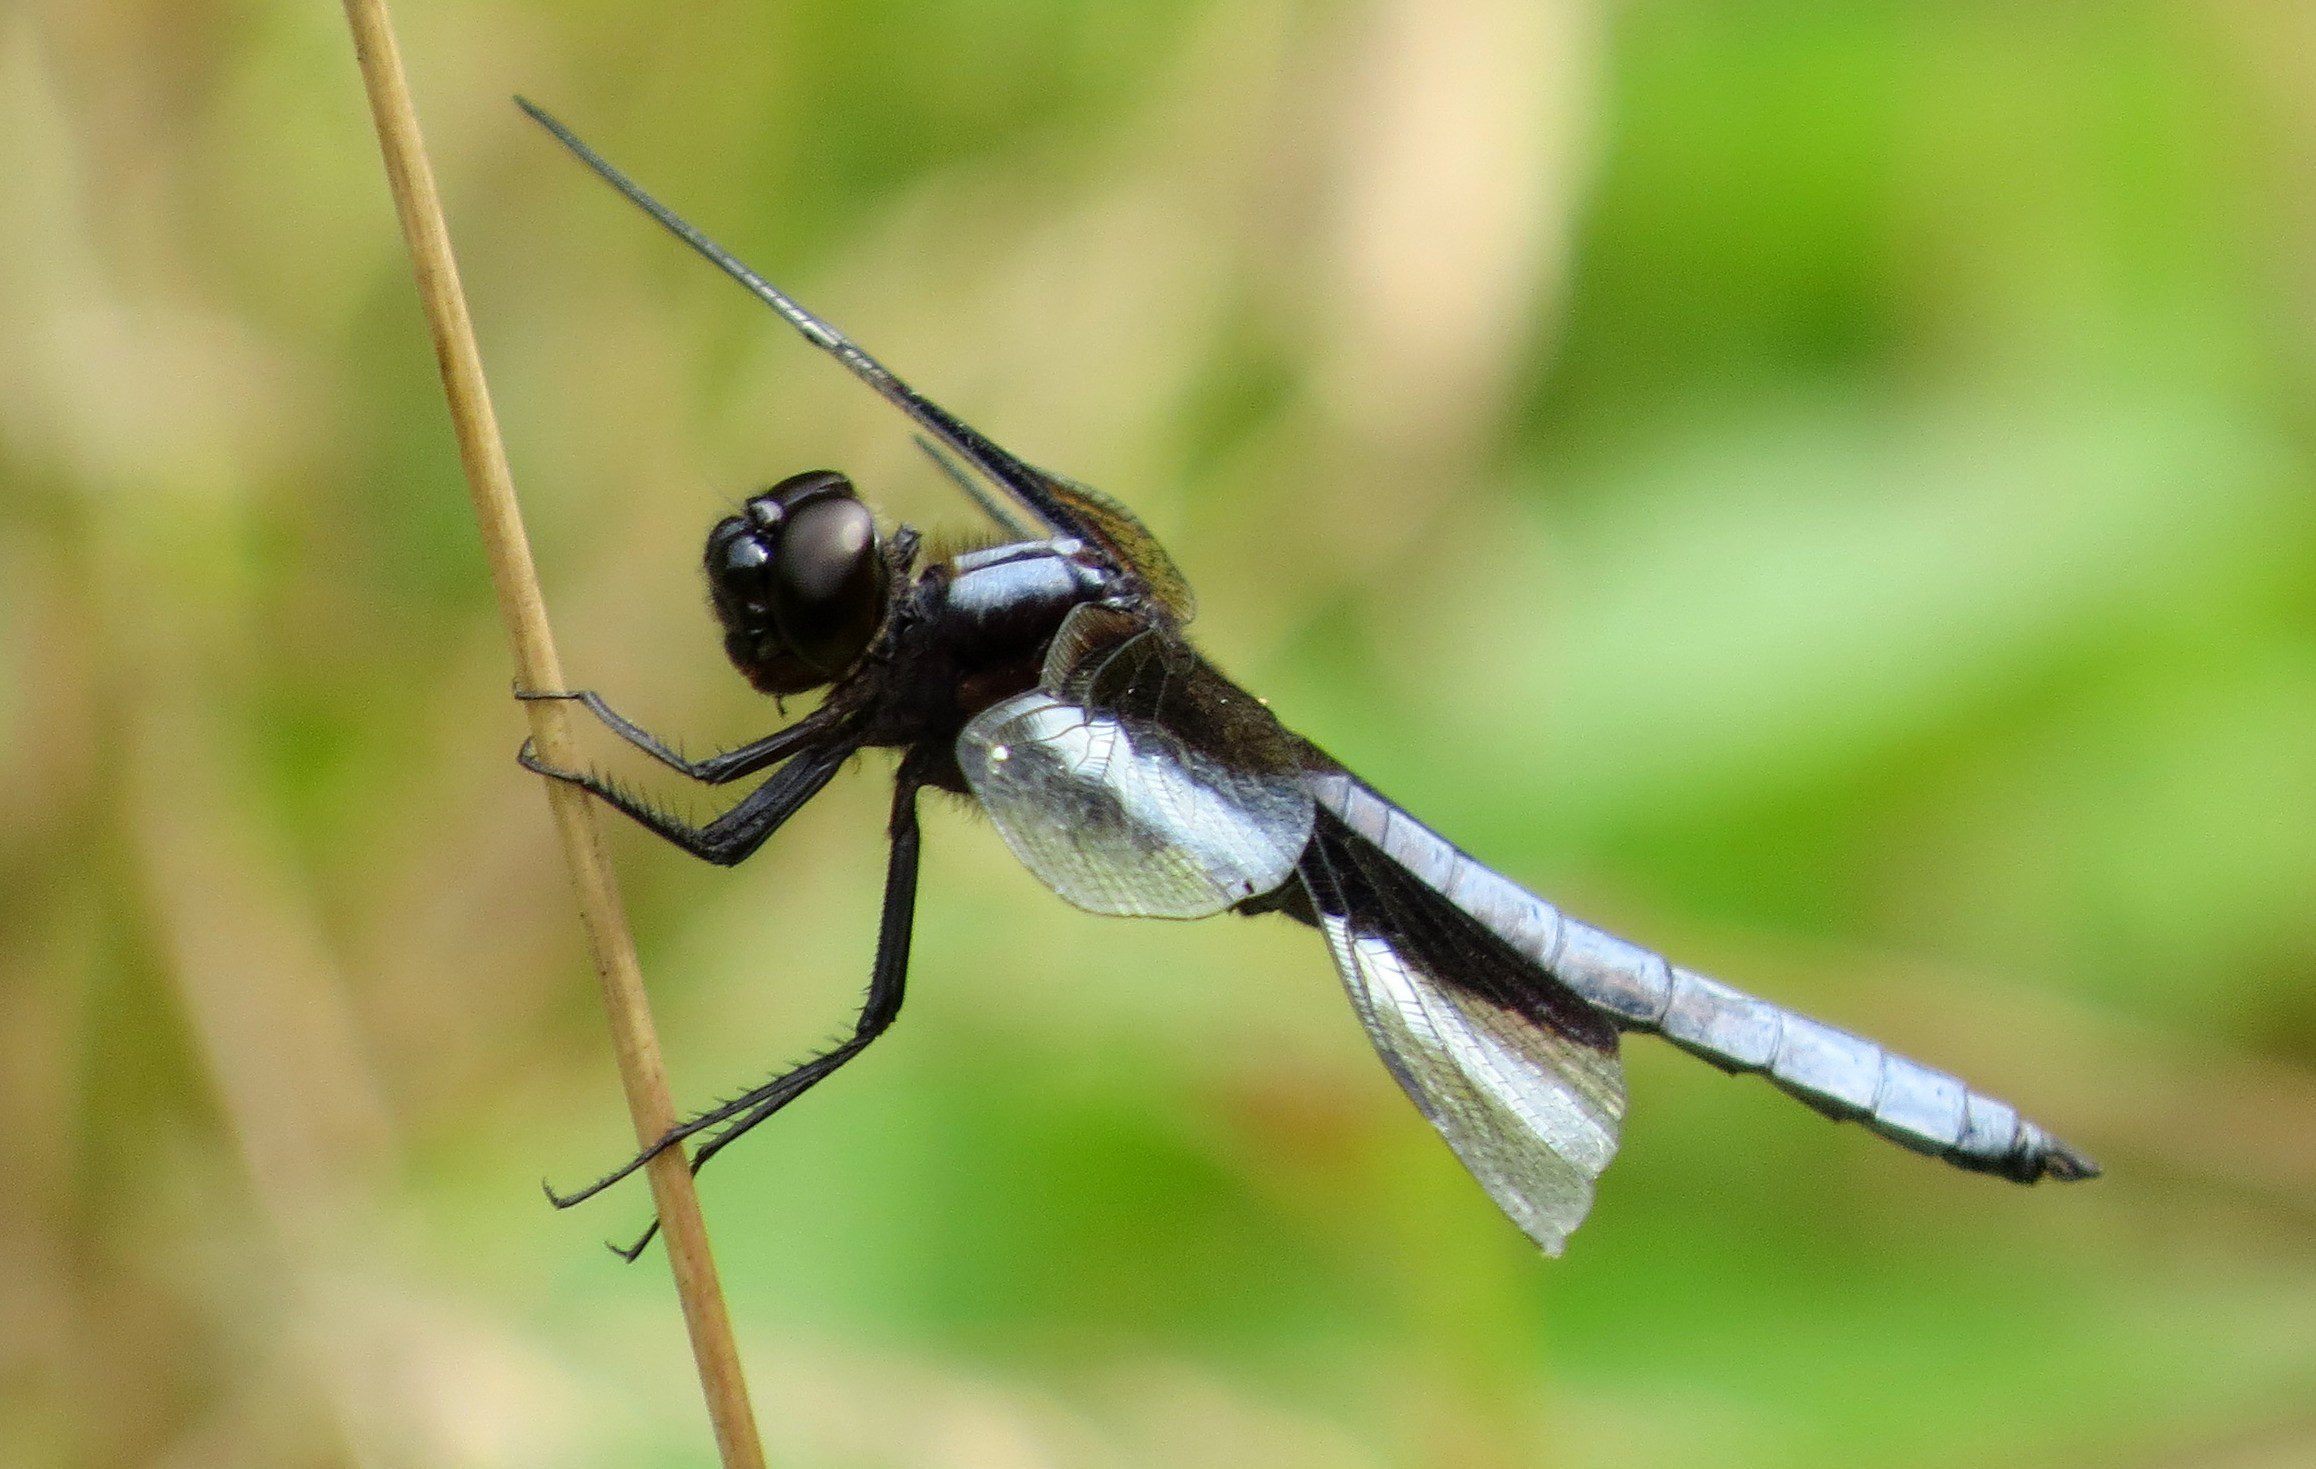 Widow Skimmers are abundant in our area during the summer.  We get lucky sometimes I guess, since they are one of the more colorful and beautiful of our dragonflies (in my opinion!).  Photo by Joe Sebastiani